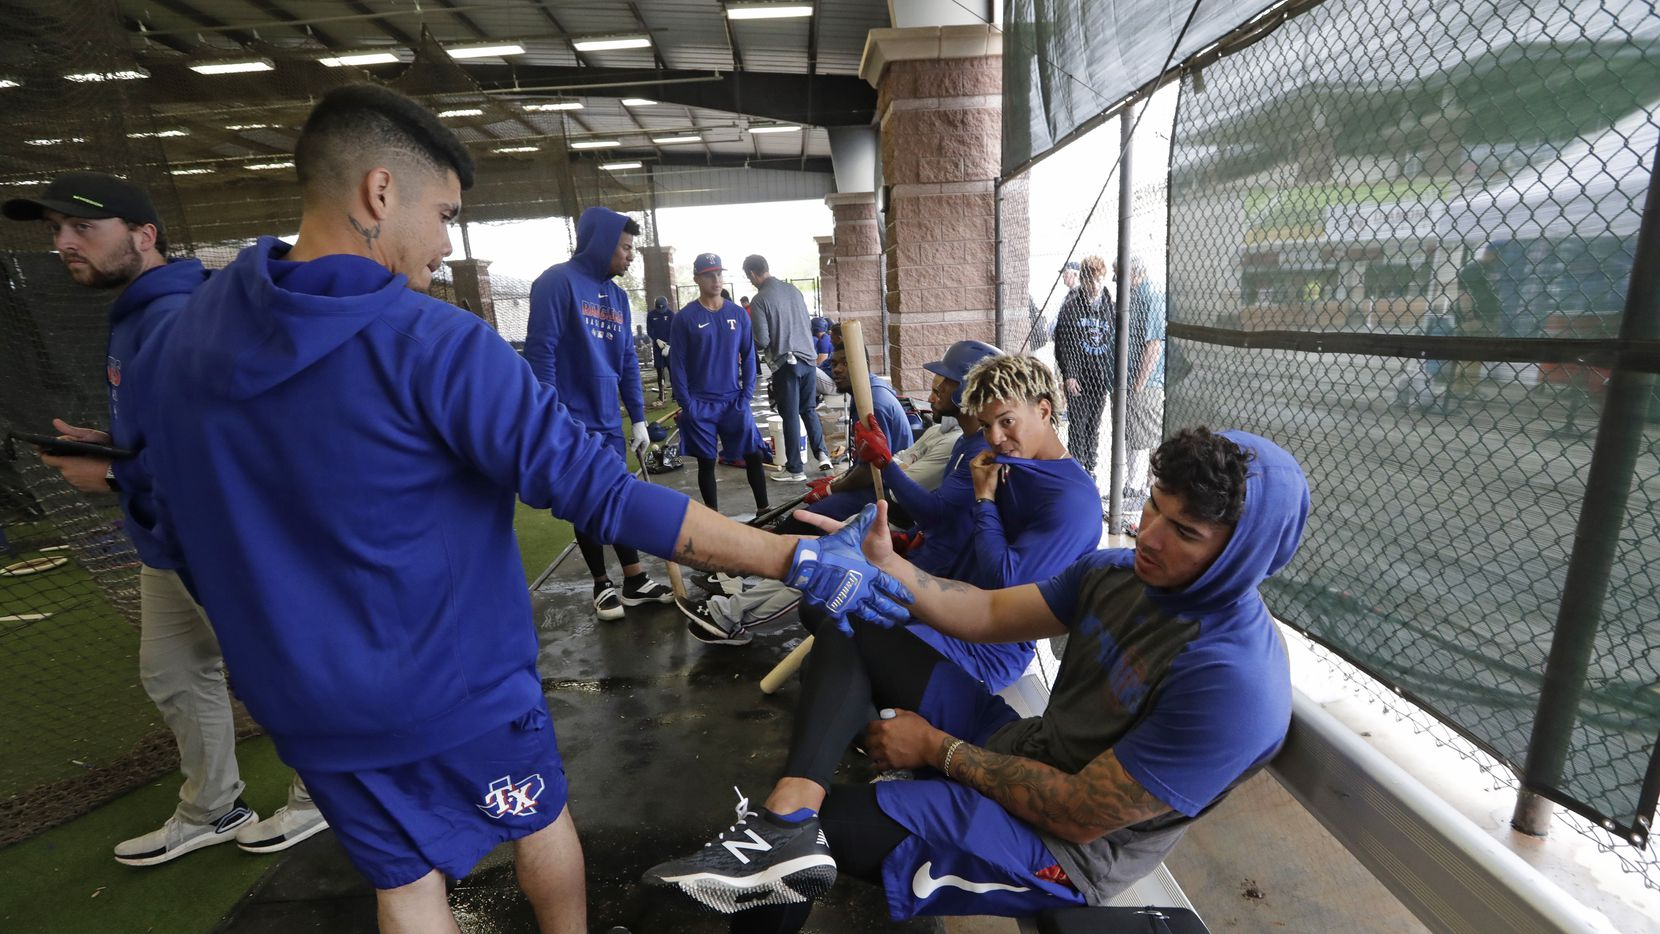 In this March 12, 2020, file photo, Texas Rangers minor-league players Chris Seise, right, and Kevin Mendoza greet each other in the batting cages in Surprise, Ariz.  Spring training could be delayed for Double-A and Class A players if major leaguers are not vaccinated for the novel coronavirus by the time big league practice is scheduled to start in mid-February. Major League Baseball, which has taken over operation of the minors, gave notice to minor league teams and big league clubs Monday, Jan. 4.